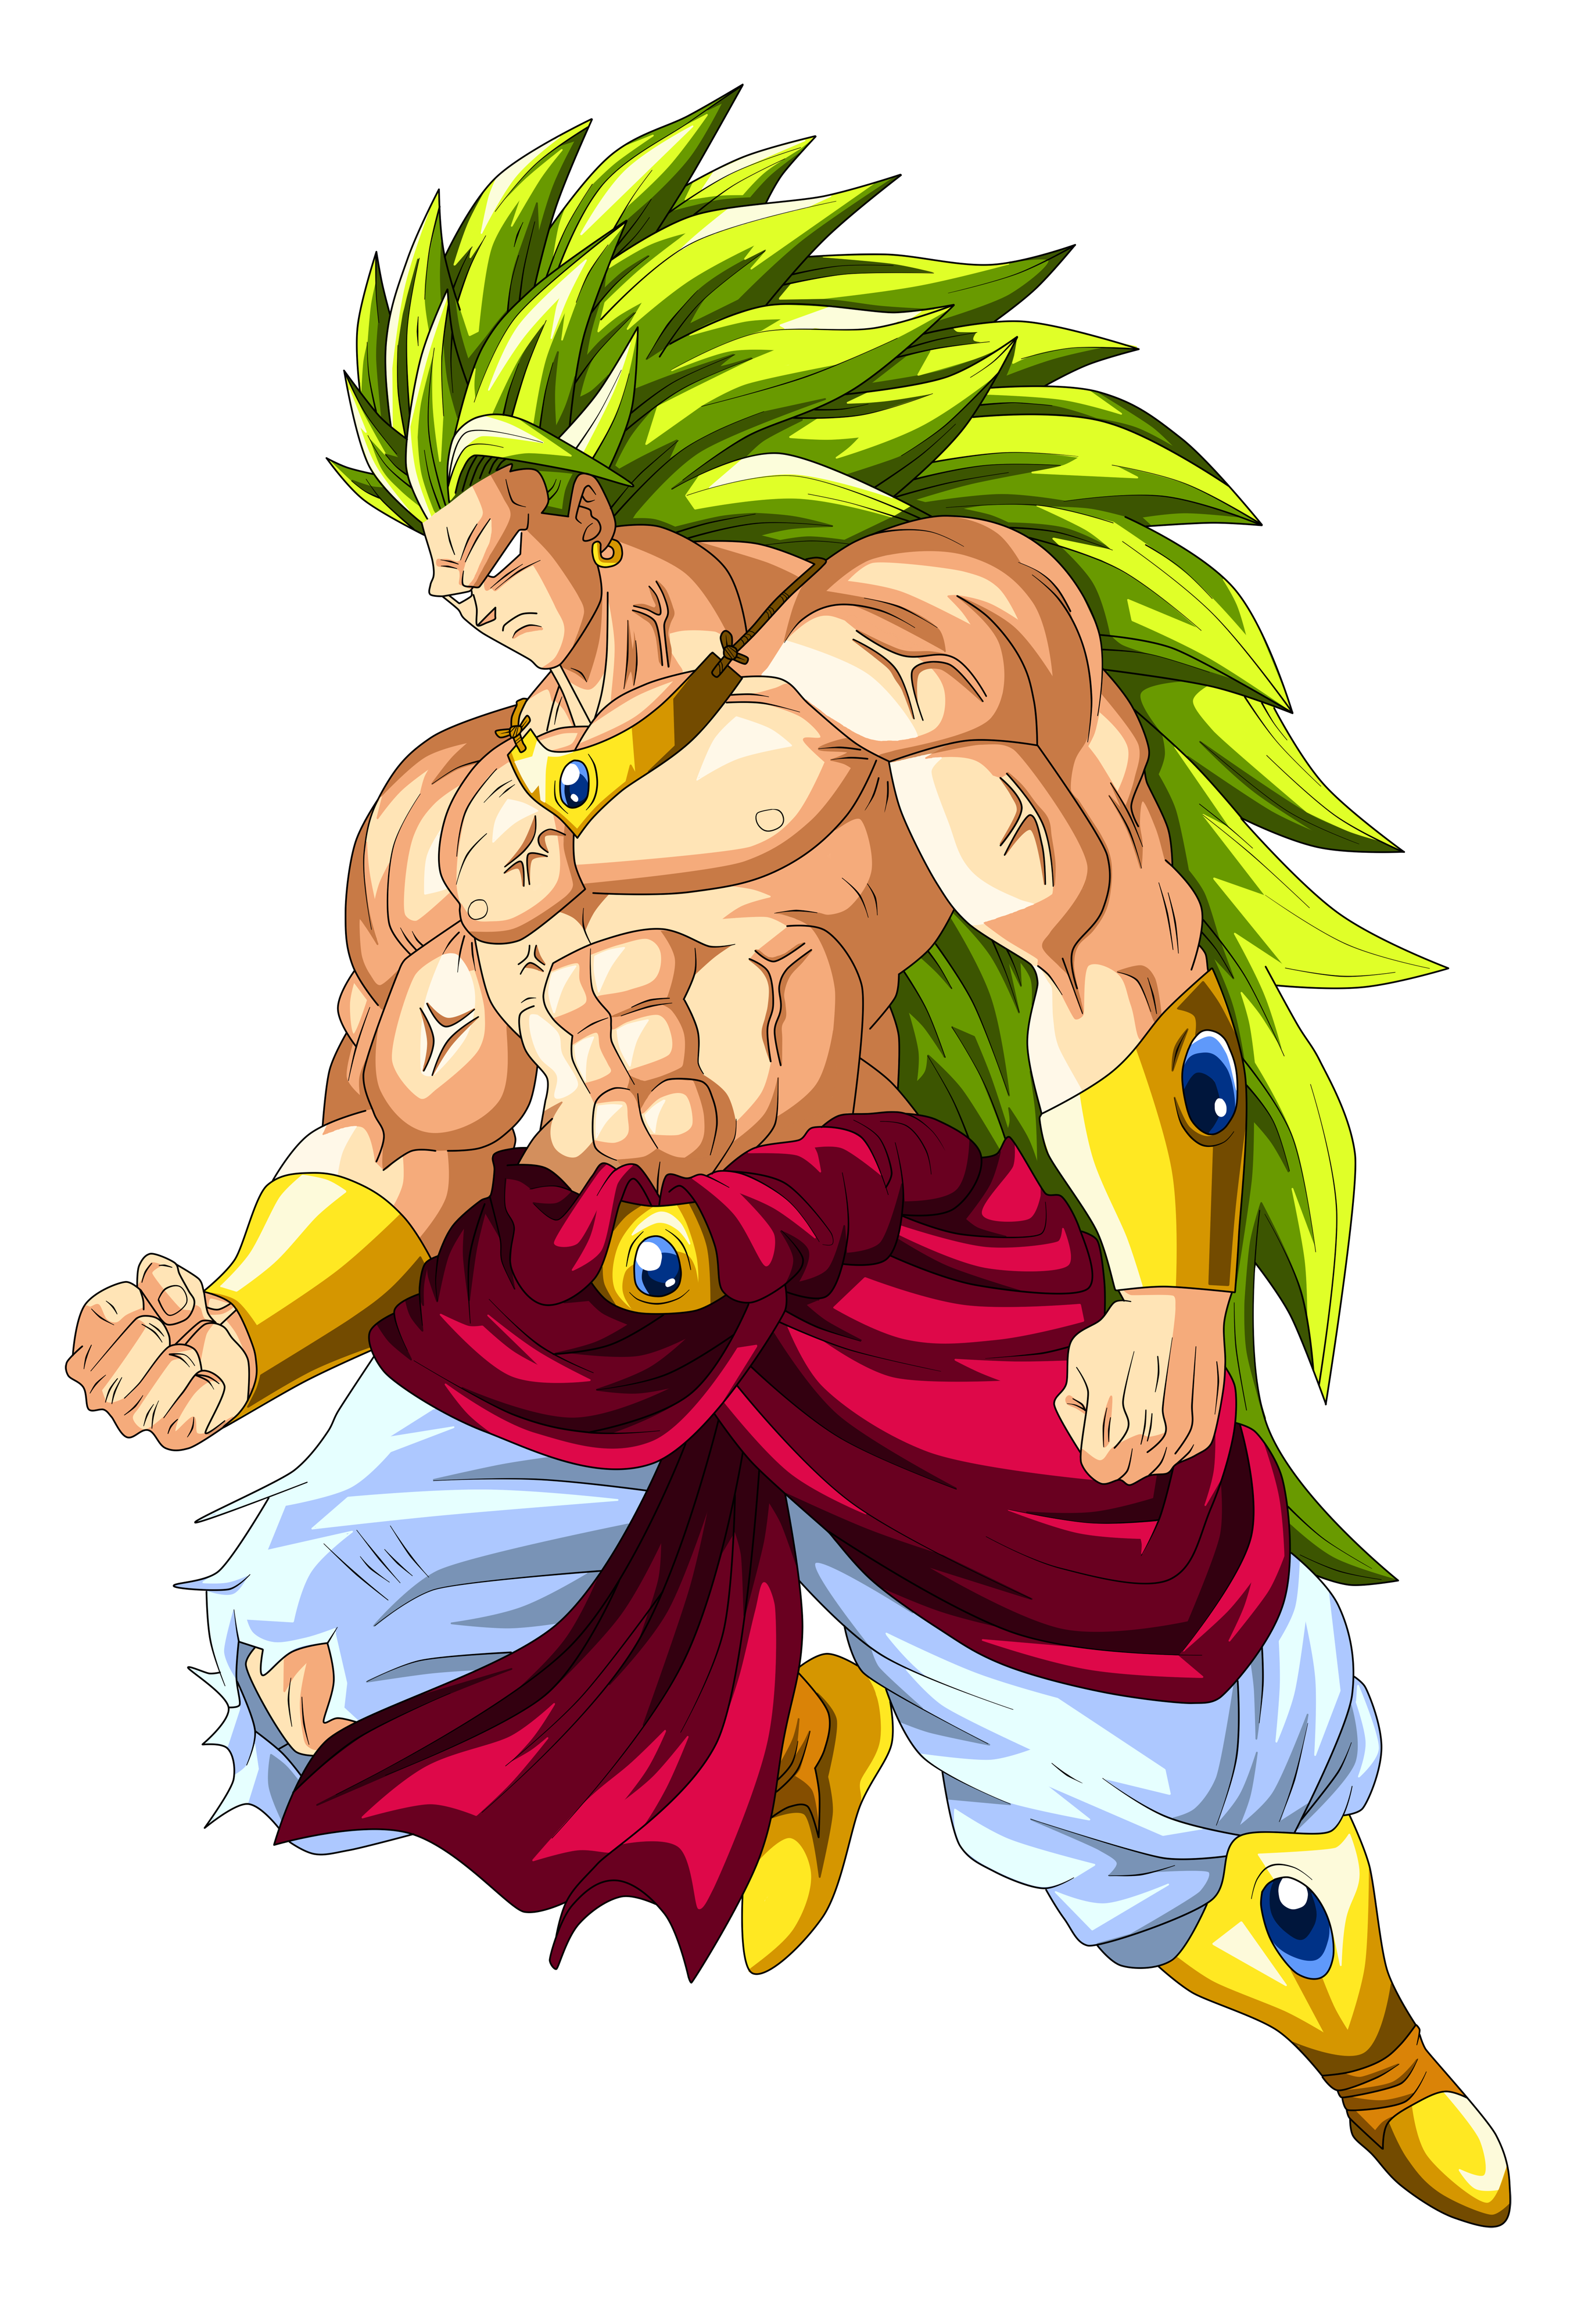 Dragon Ball Z PNG Images Transparent Free Download.